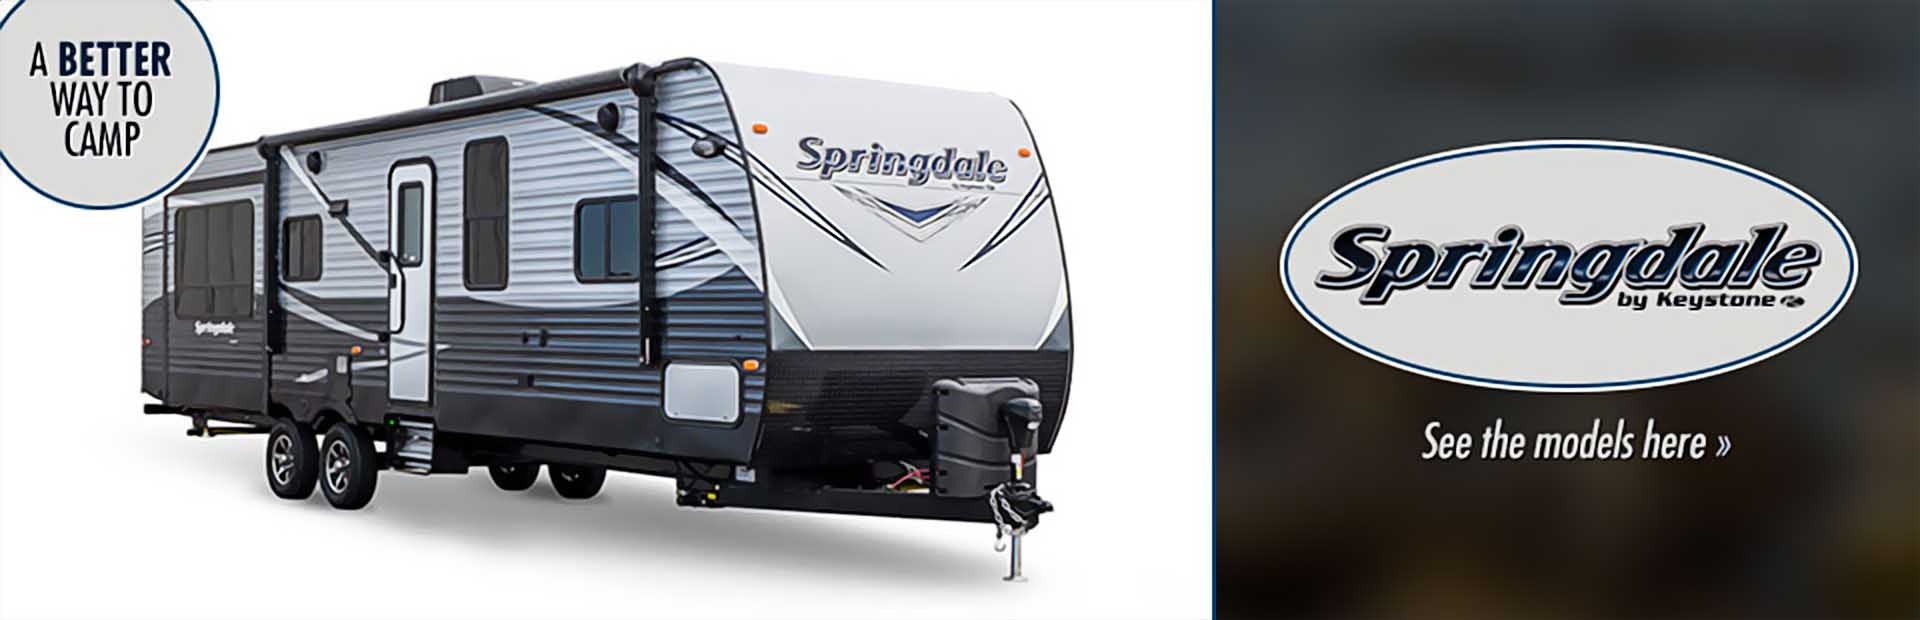 Springdale by Keystone: Click here to view the models.